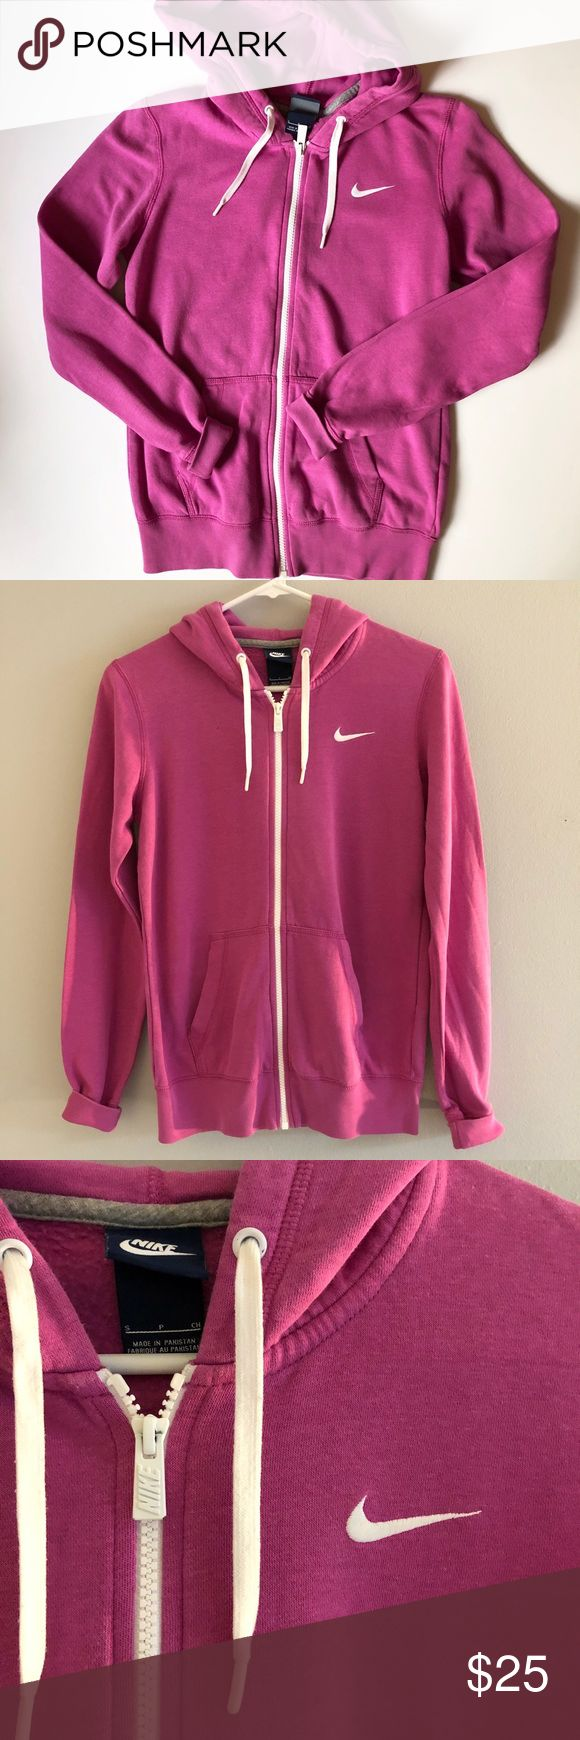 NWOT Nike Women's Zip Up Hoodie New without tag Nike Zip Up Hoodie, Color is a hot pink/Purple, Women's size Small, offers are welcome💕 Nike Tops Sweatshirts & Hoodies